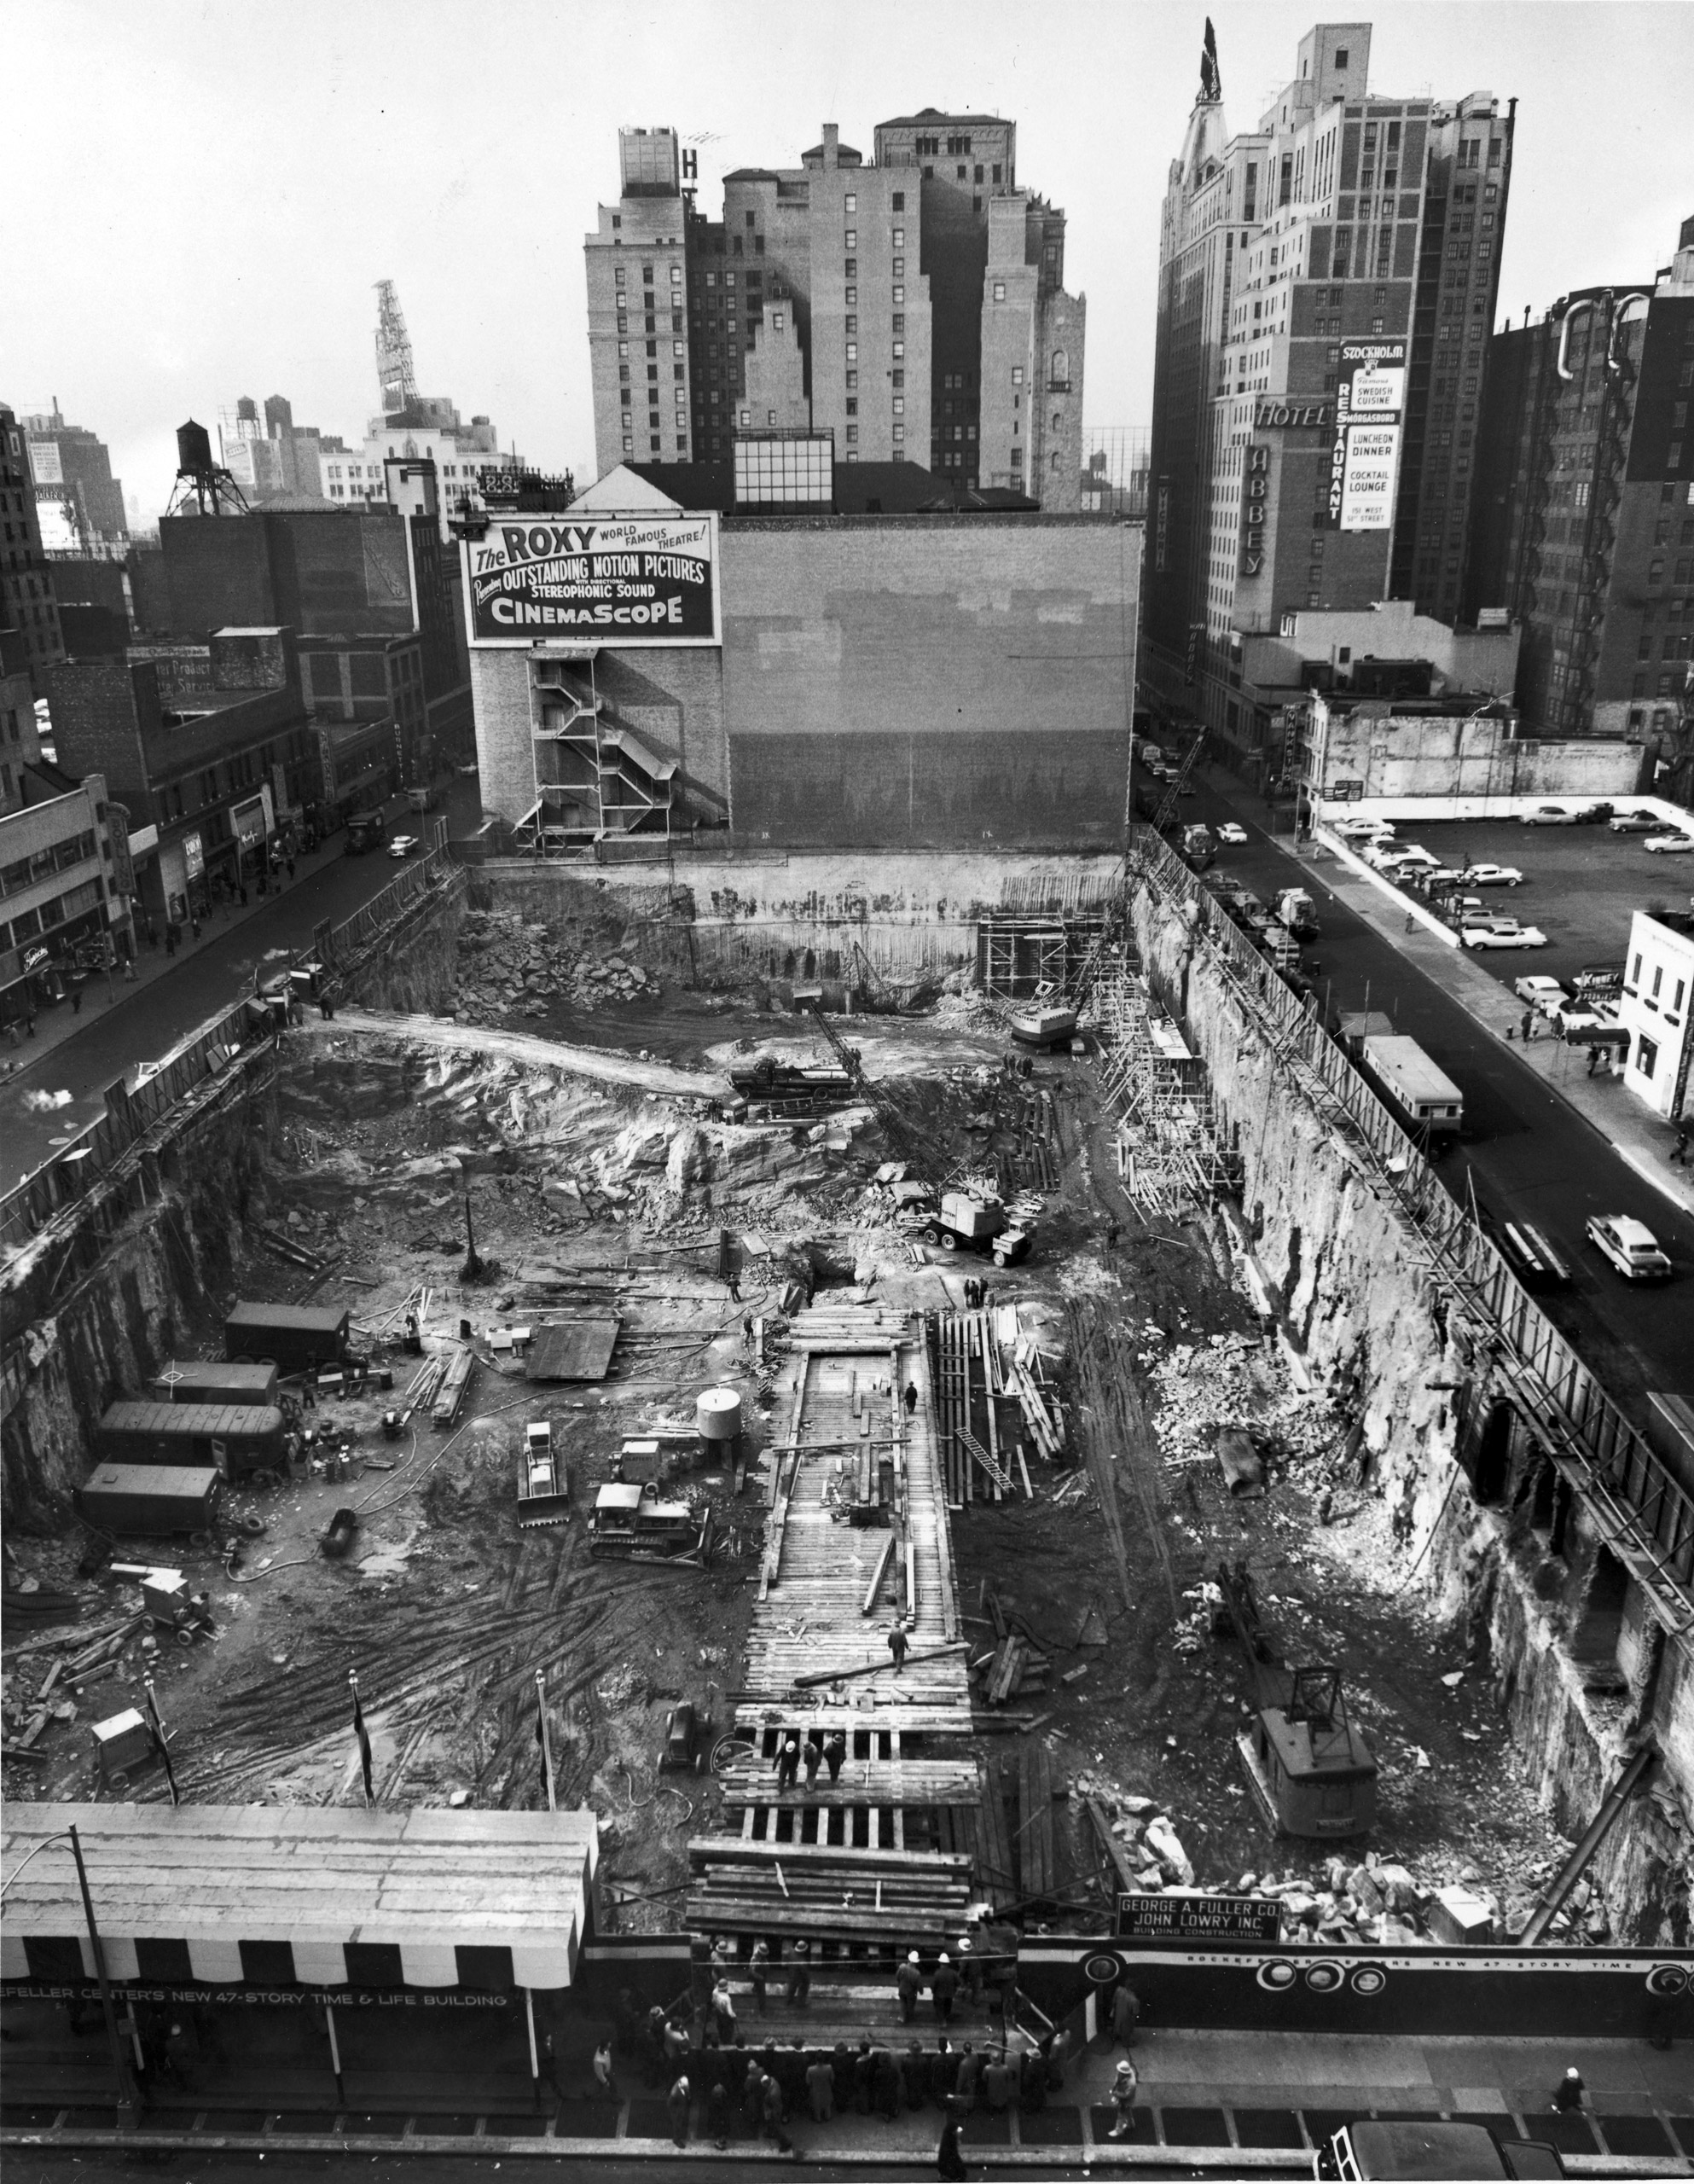 Construction of the Time & Life Building at Avenue of the Americas and 50th Street, 1957.